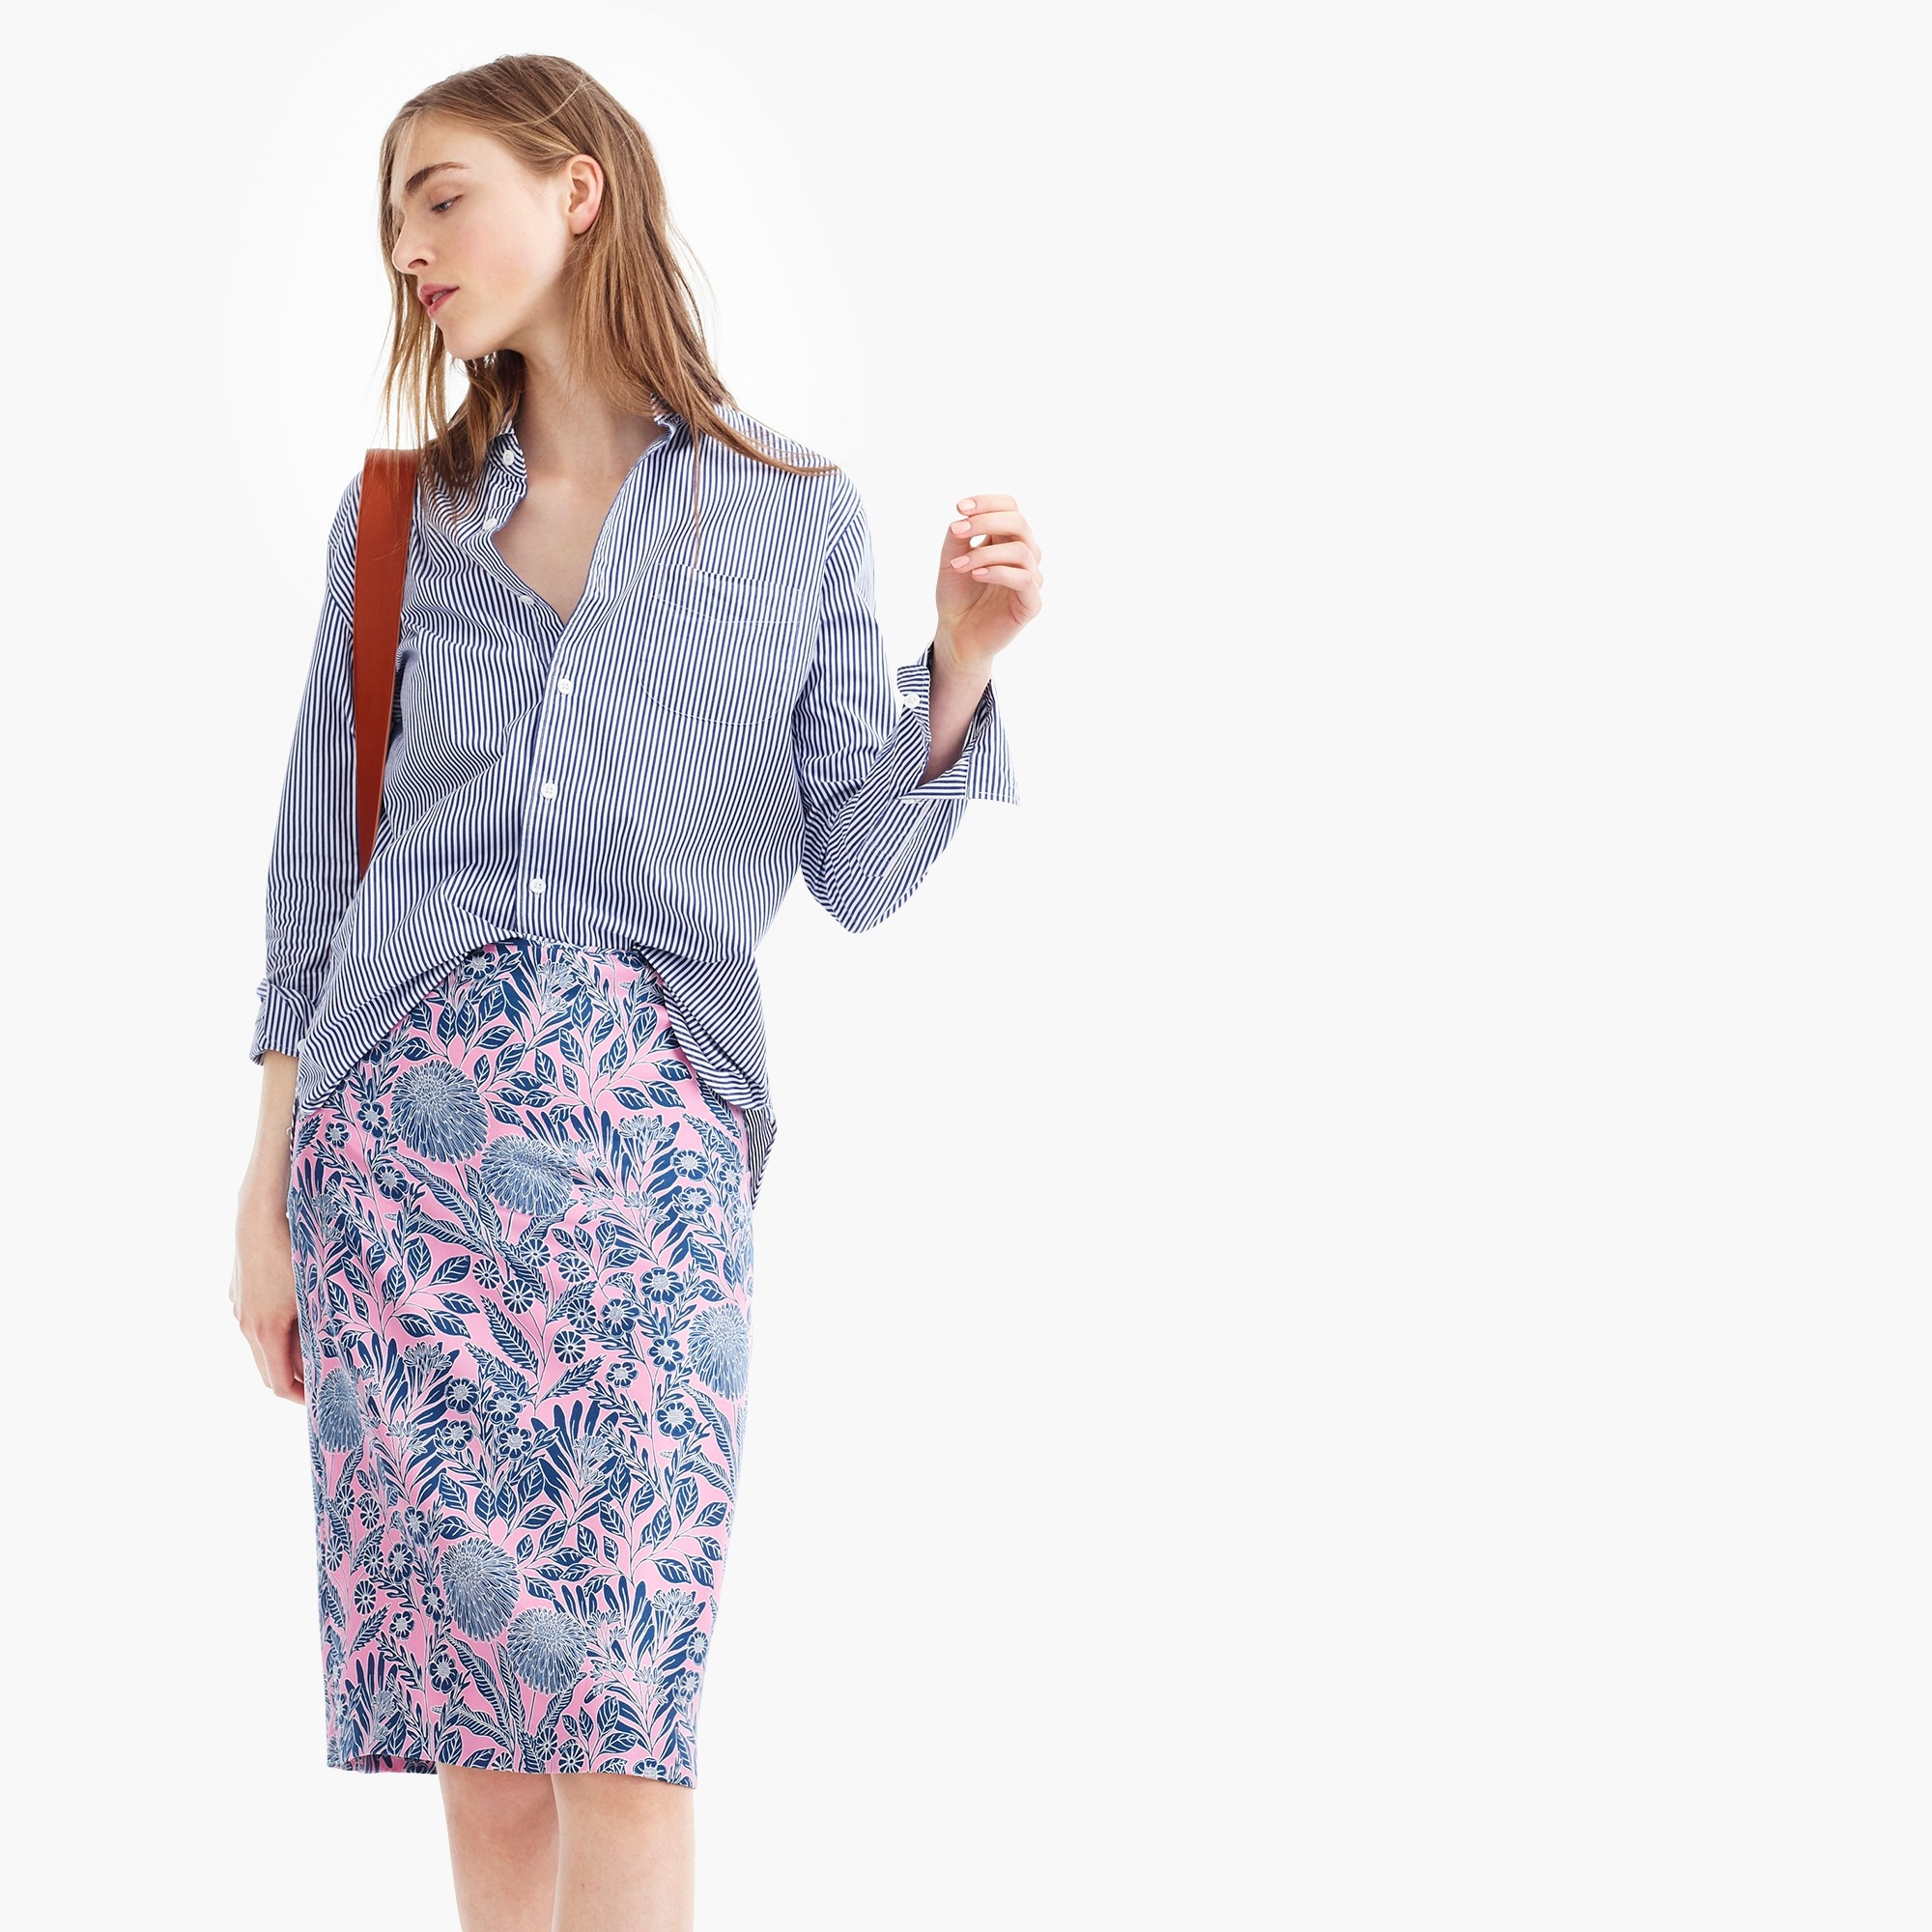 Image 1 for J.Crew X Abigail Borg silk slip skirt